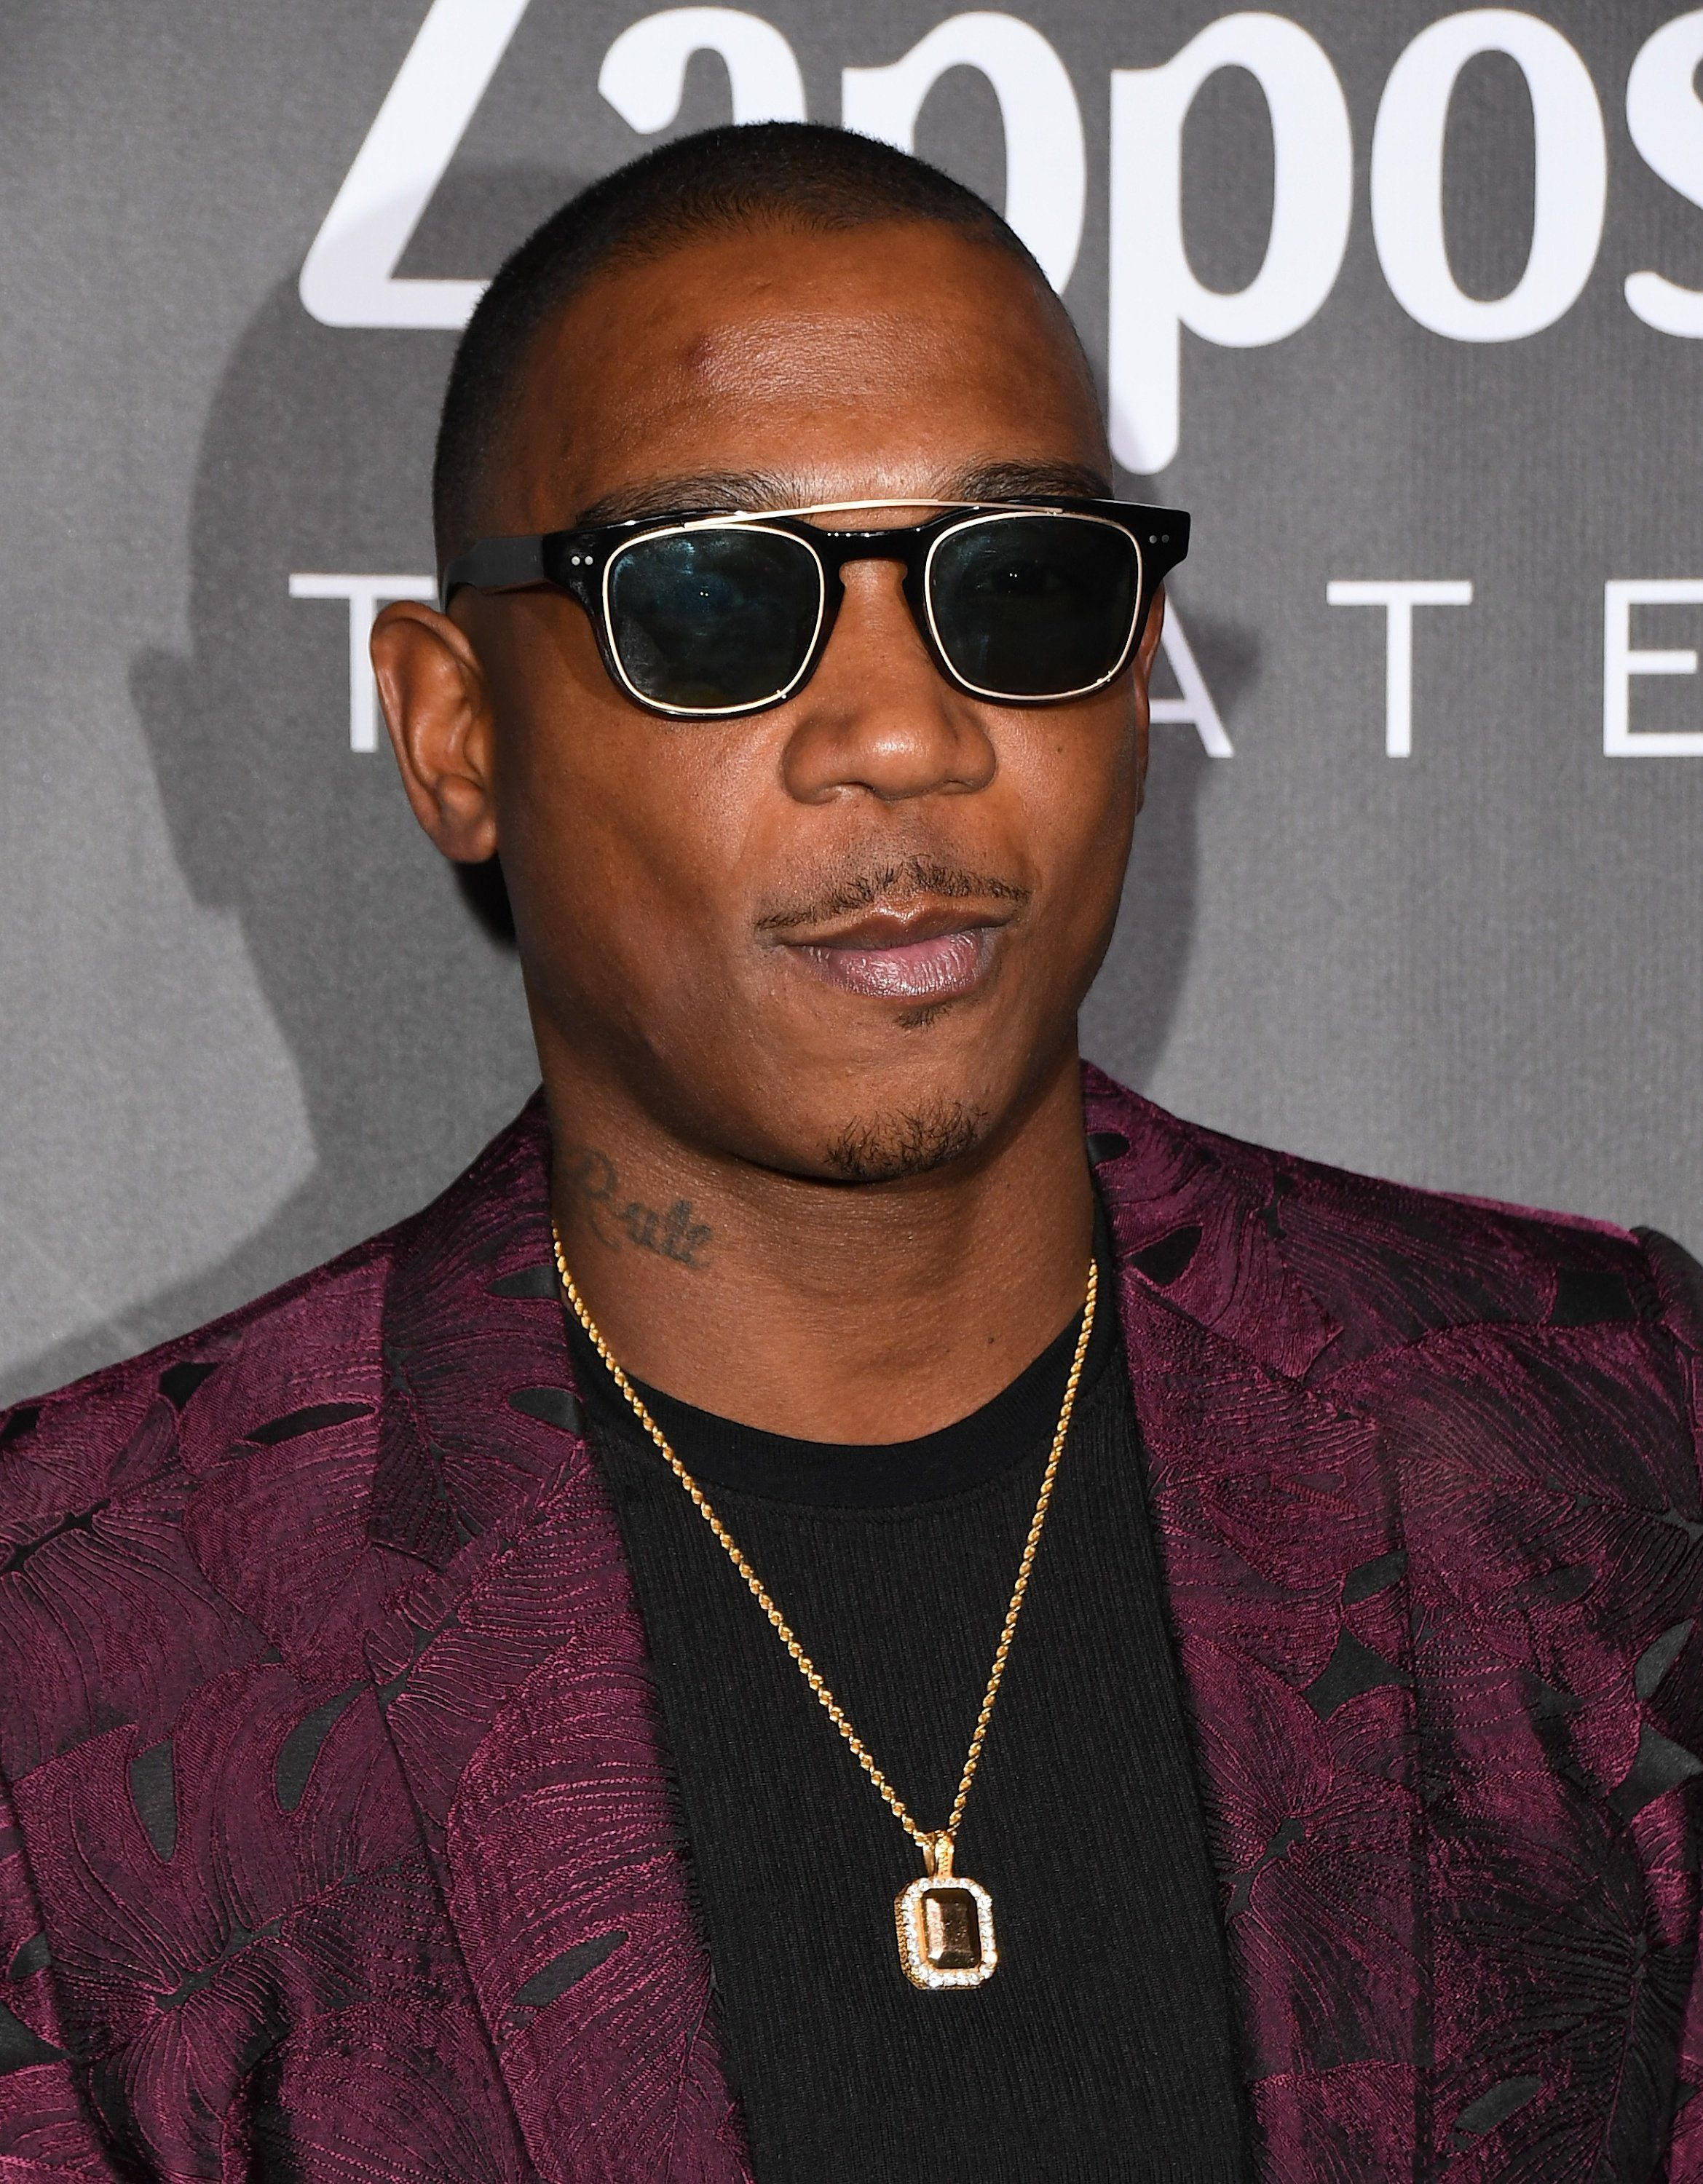 LAS VEGAS, NV - SEPTEMBER 30:  Rapper Ja Rule attends the after party for the finale of the 'JENNIFER LOPEZ: ALL I HAVE' residency at MR CHOW at Caesars Palace on September 30, 2018 in Las Vegas, Nevada.  (Photo by Mindy Small/FilmMagic)